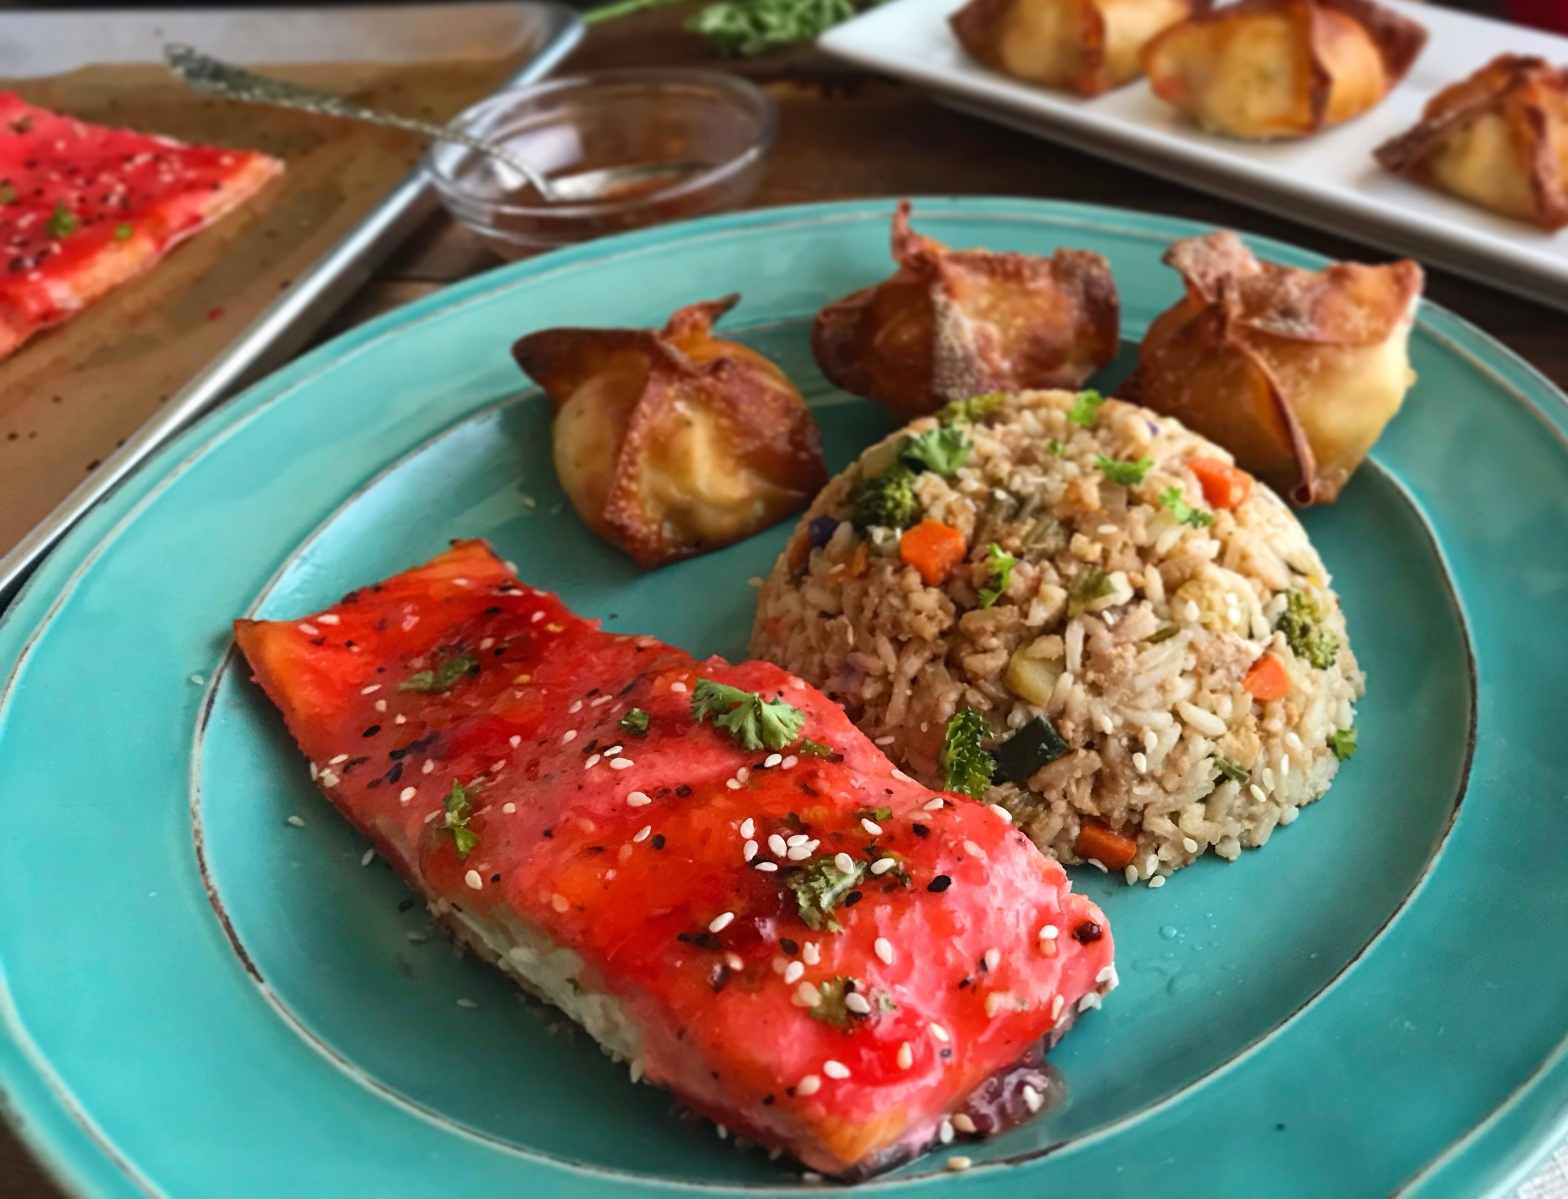 Asian Tangy Fish Seafood Baked Sweet and Sour Salmon Recipe by Ash's In The Kitchen